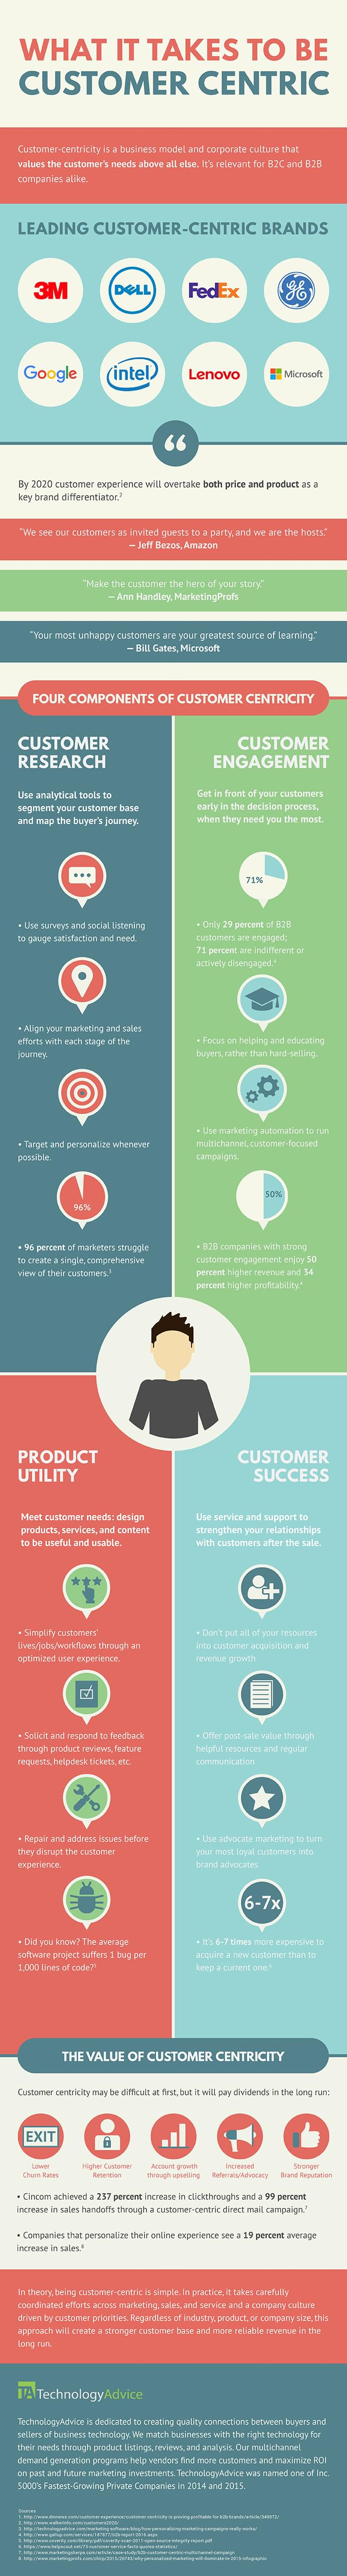 what it takes to be customer-centric